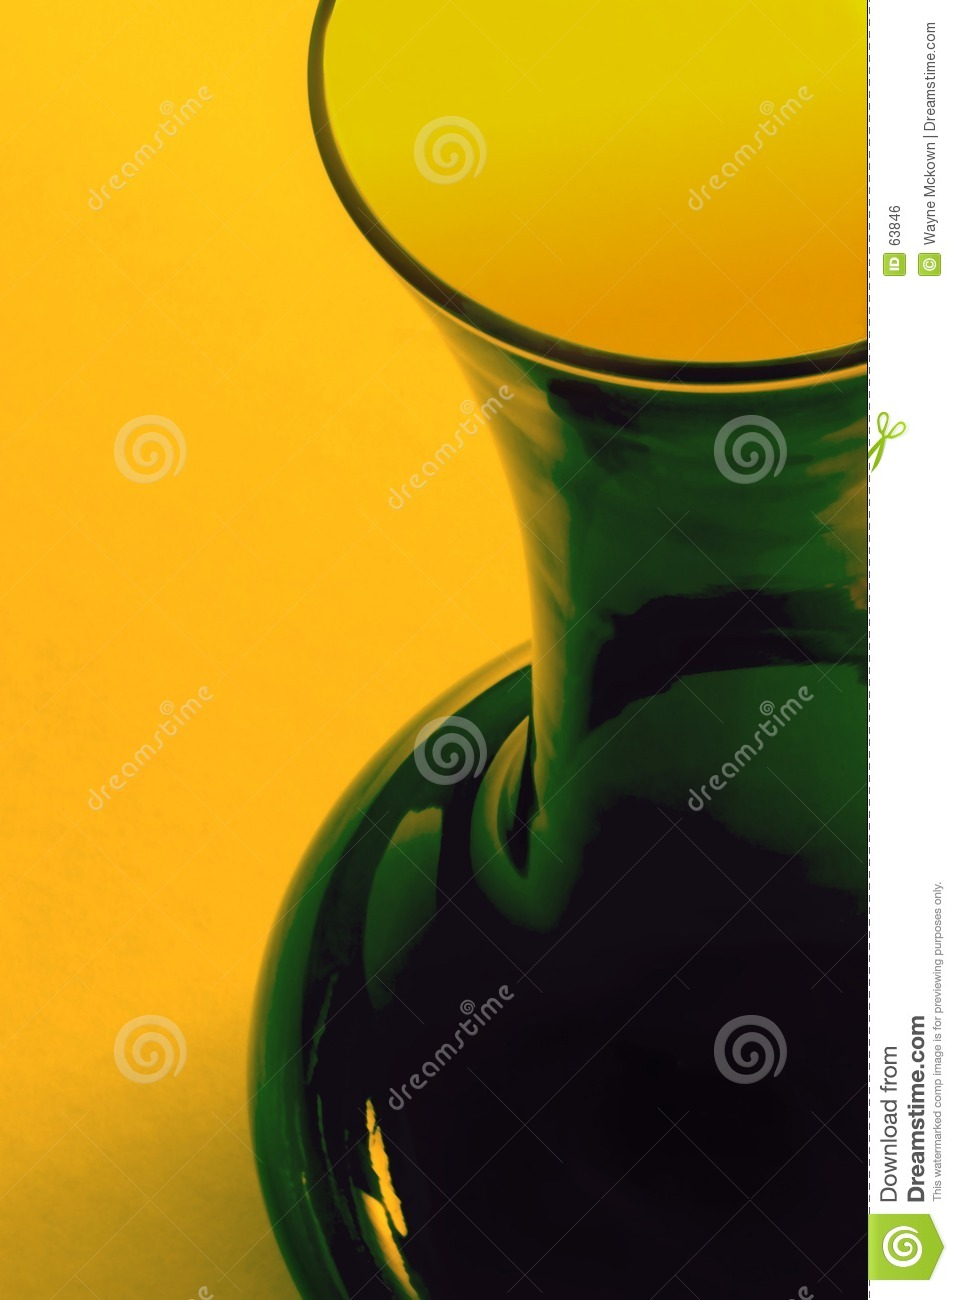 Download Vase illustration stock. Illustration du groupe, cadeau - 63846